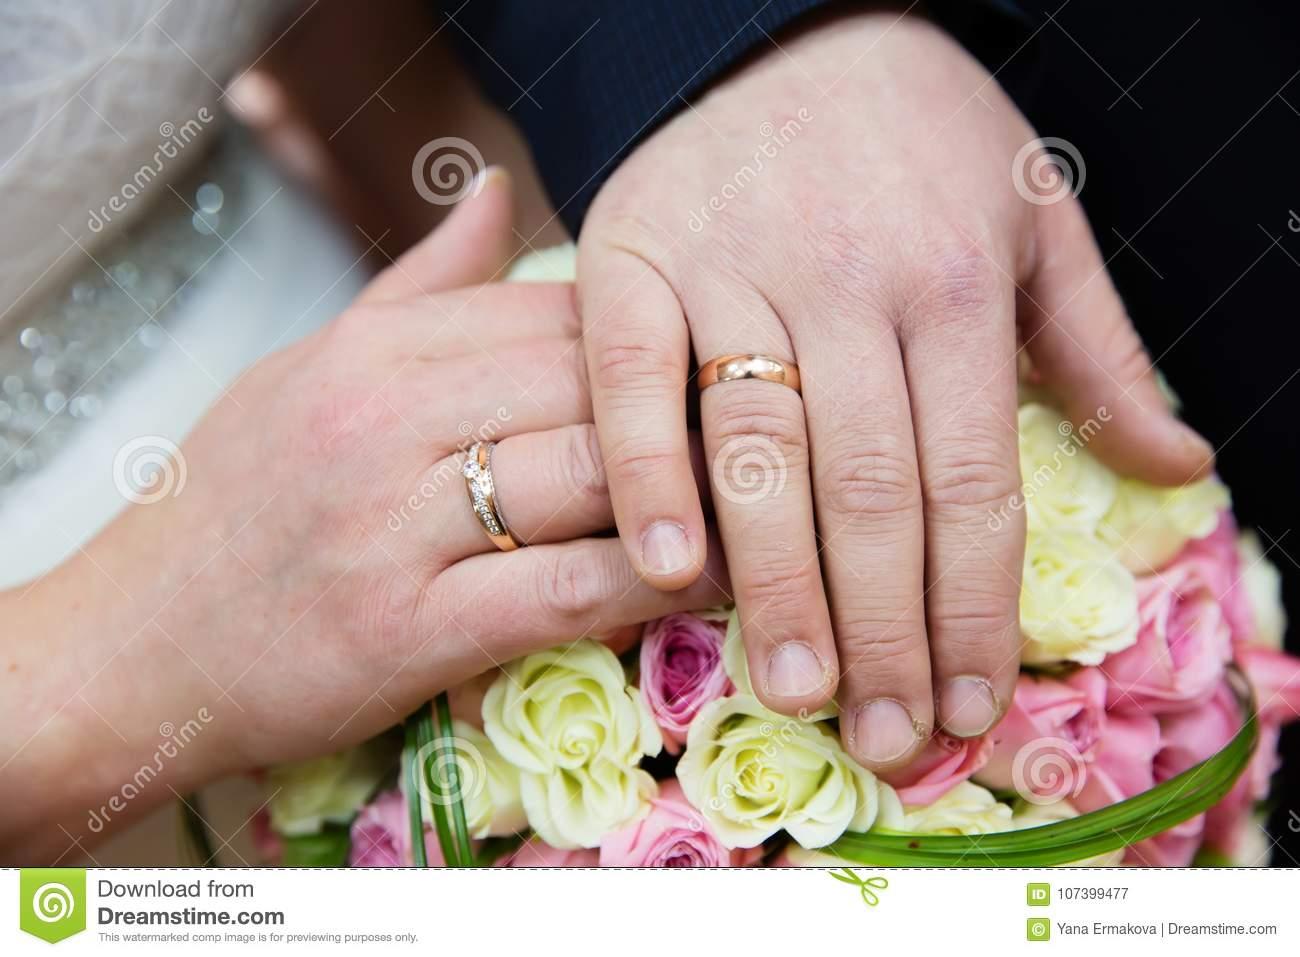 Bride And Groom Hands With Wedding Rings Stock Image - Image of love ...